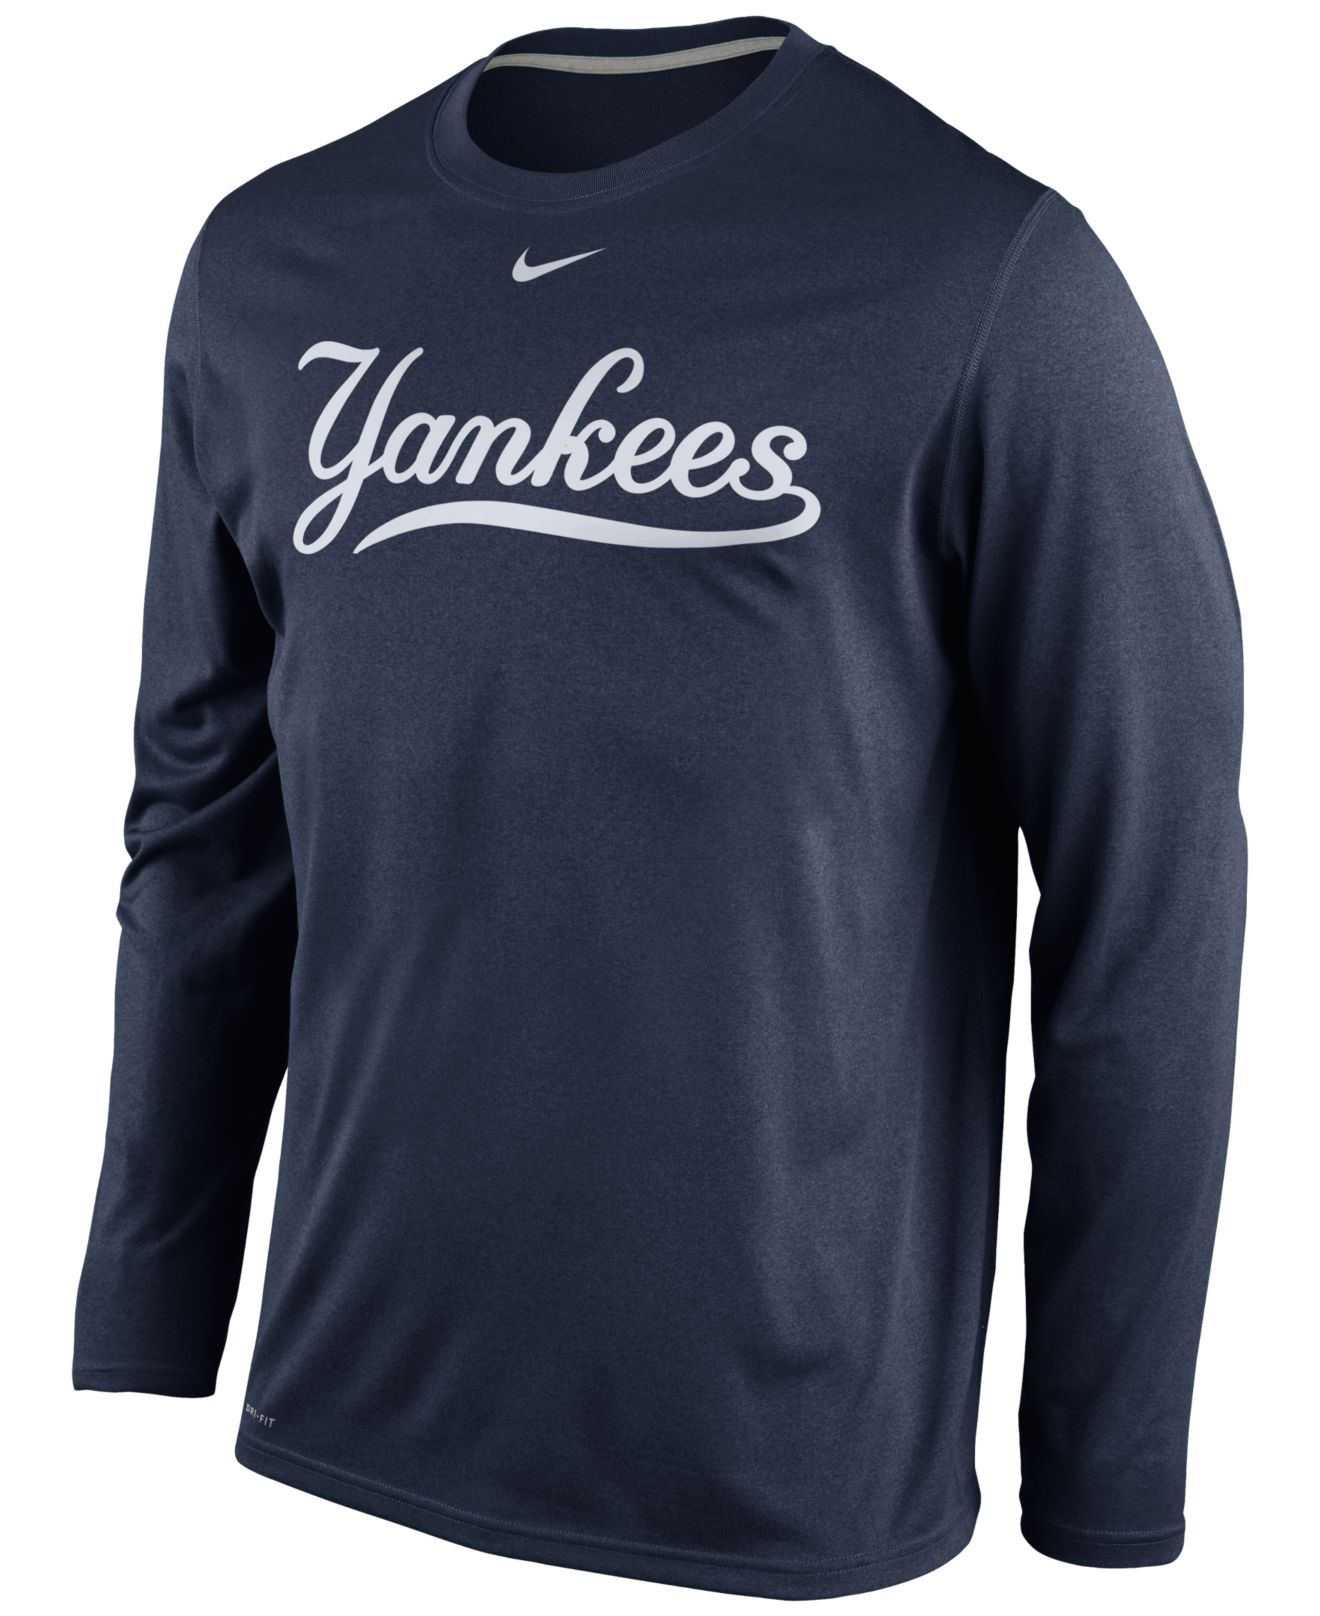 Cut from cotton jersey, this men's New York Yankees T-shirt by MLB makes for a comfortable add to game-day staples. The tee keeps casual with a crew neck and short sleeves. The tee keeps casual with a crew neck and short sleeves.